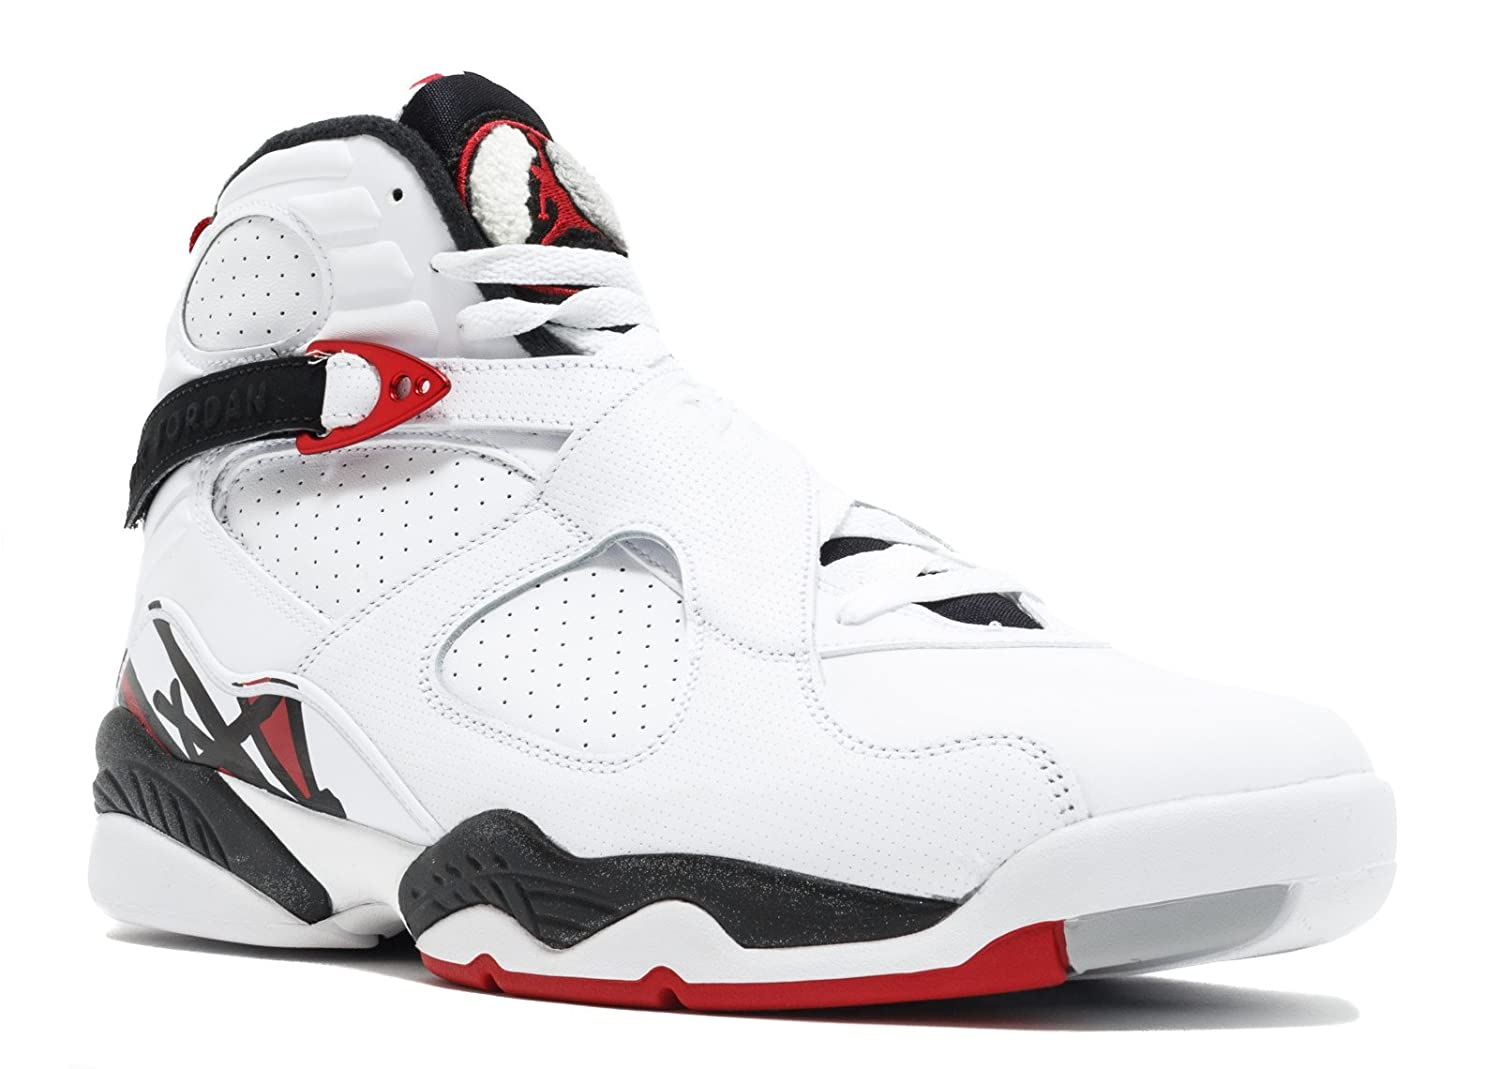 AIR JORDAN - エアジョーダン - AIR JORDAN 8 RETRO 'ALTERNATE' - 305381-104 - SIZE 7 (メンズ) B06VW9HLZP